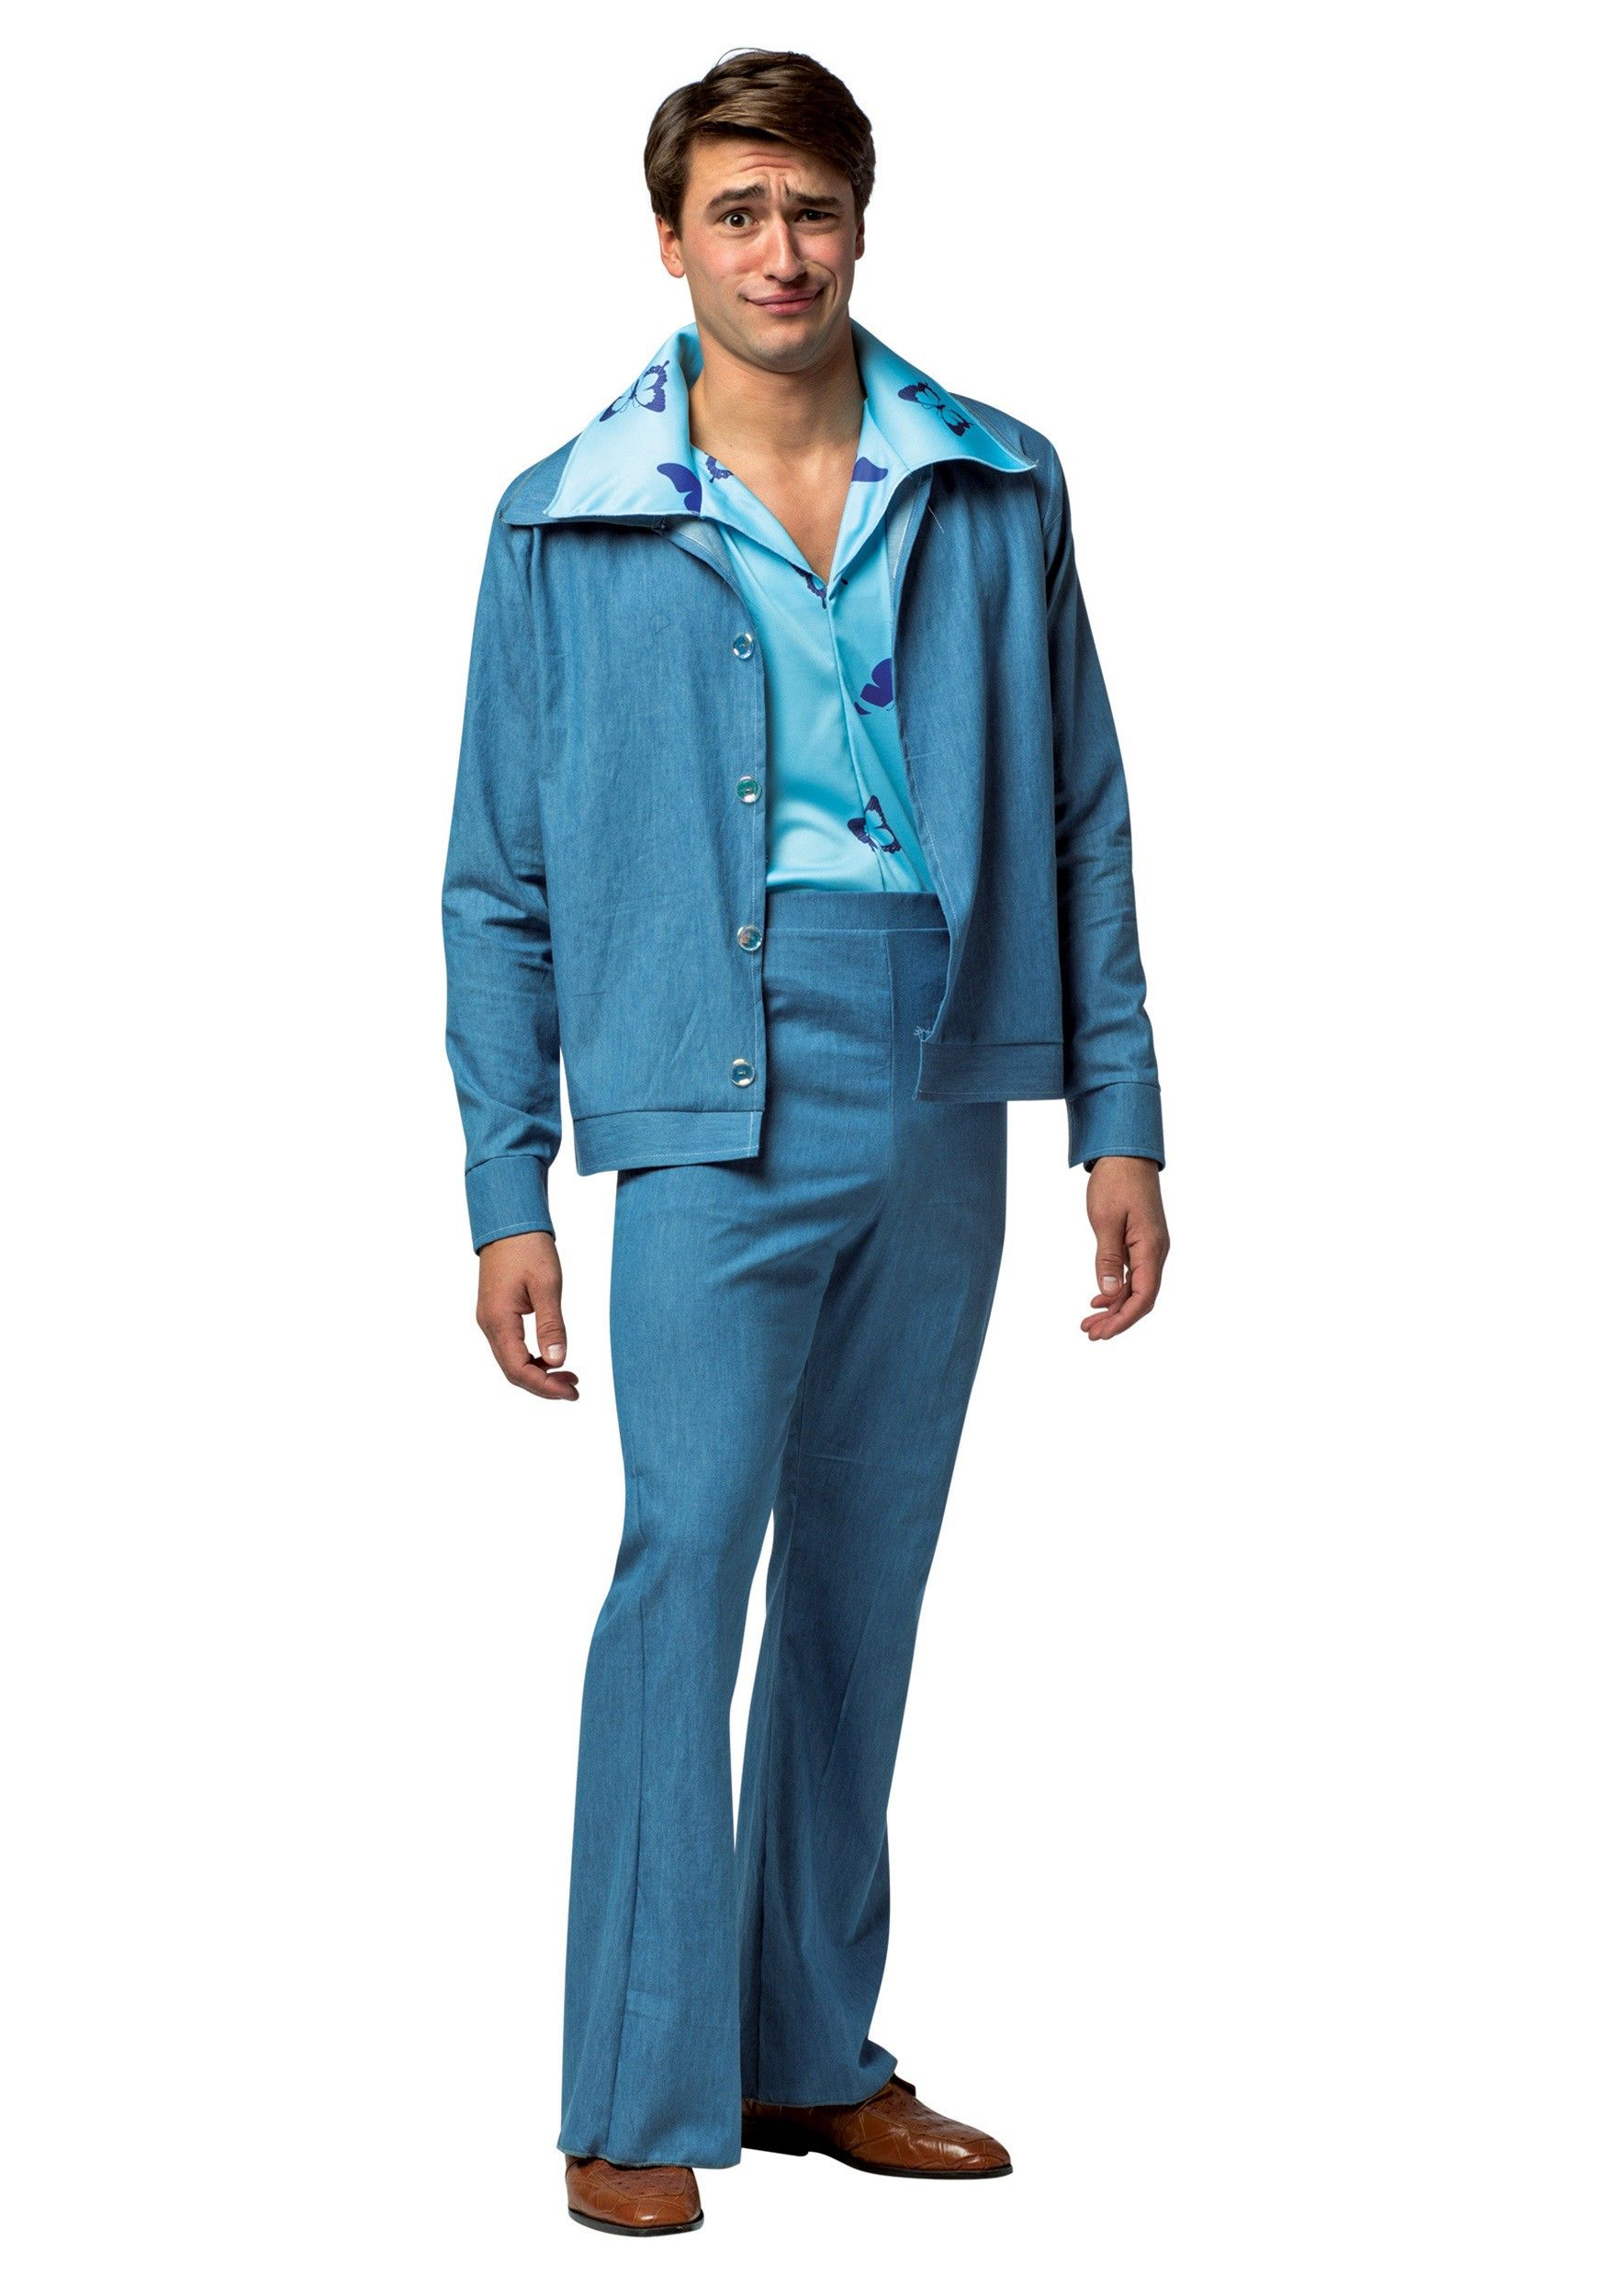 Cousin Eddie Christmas Vacation: National Lampoons Cousin Eddie Leisure Suit